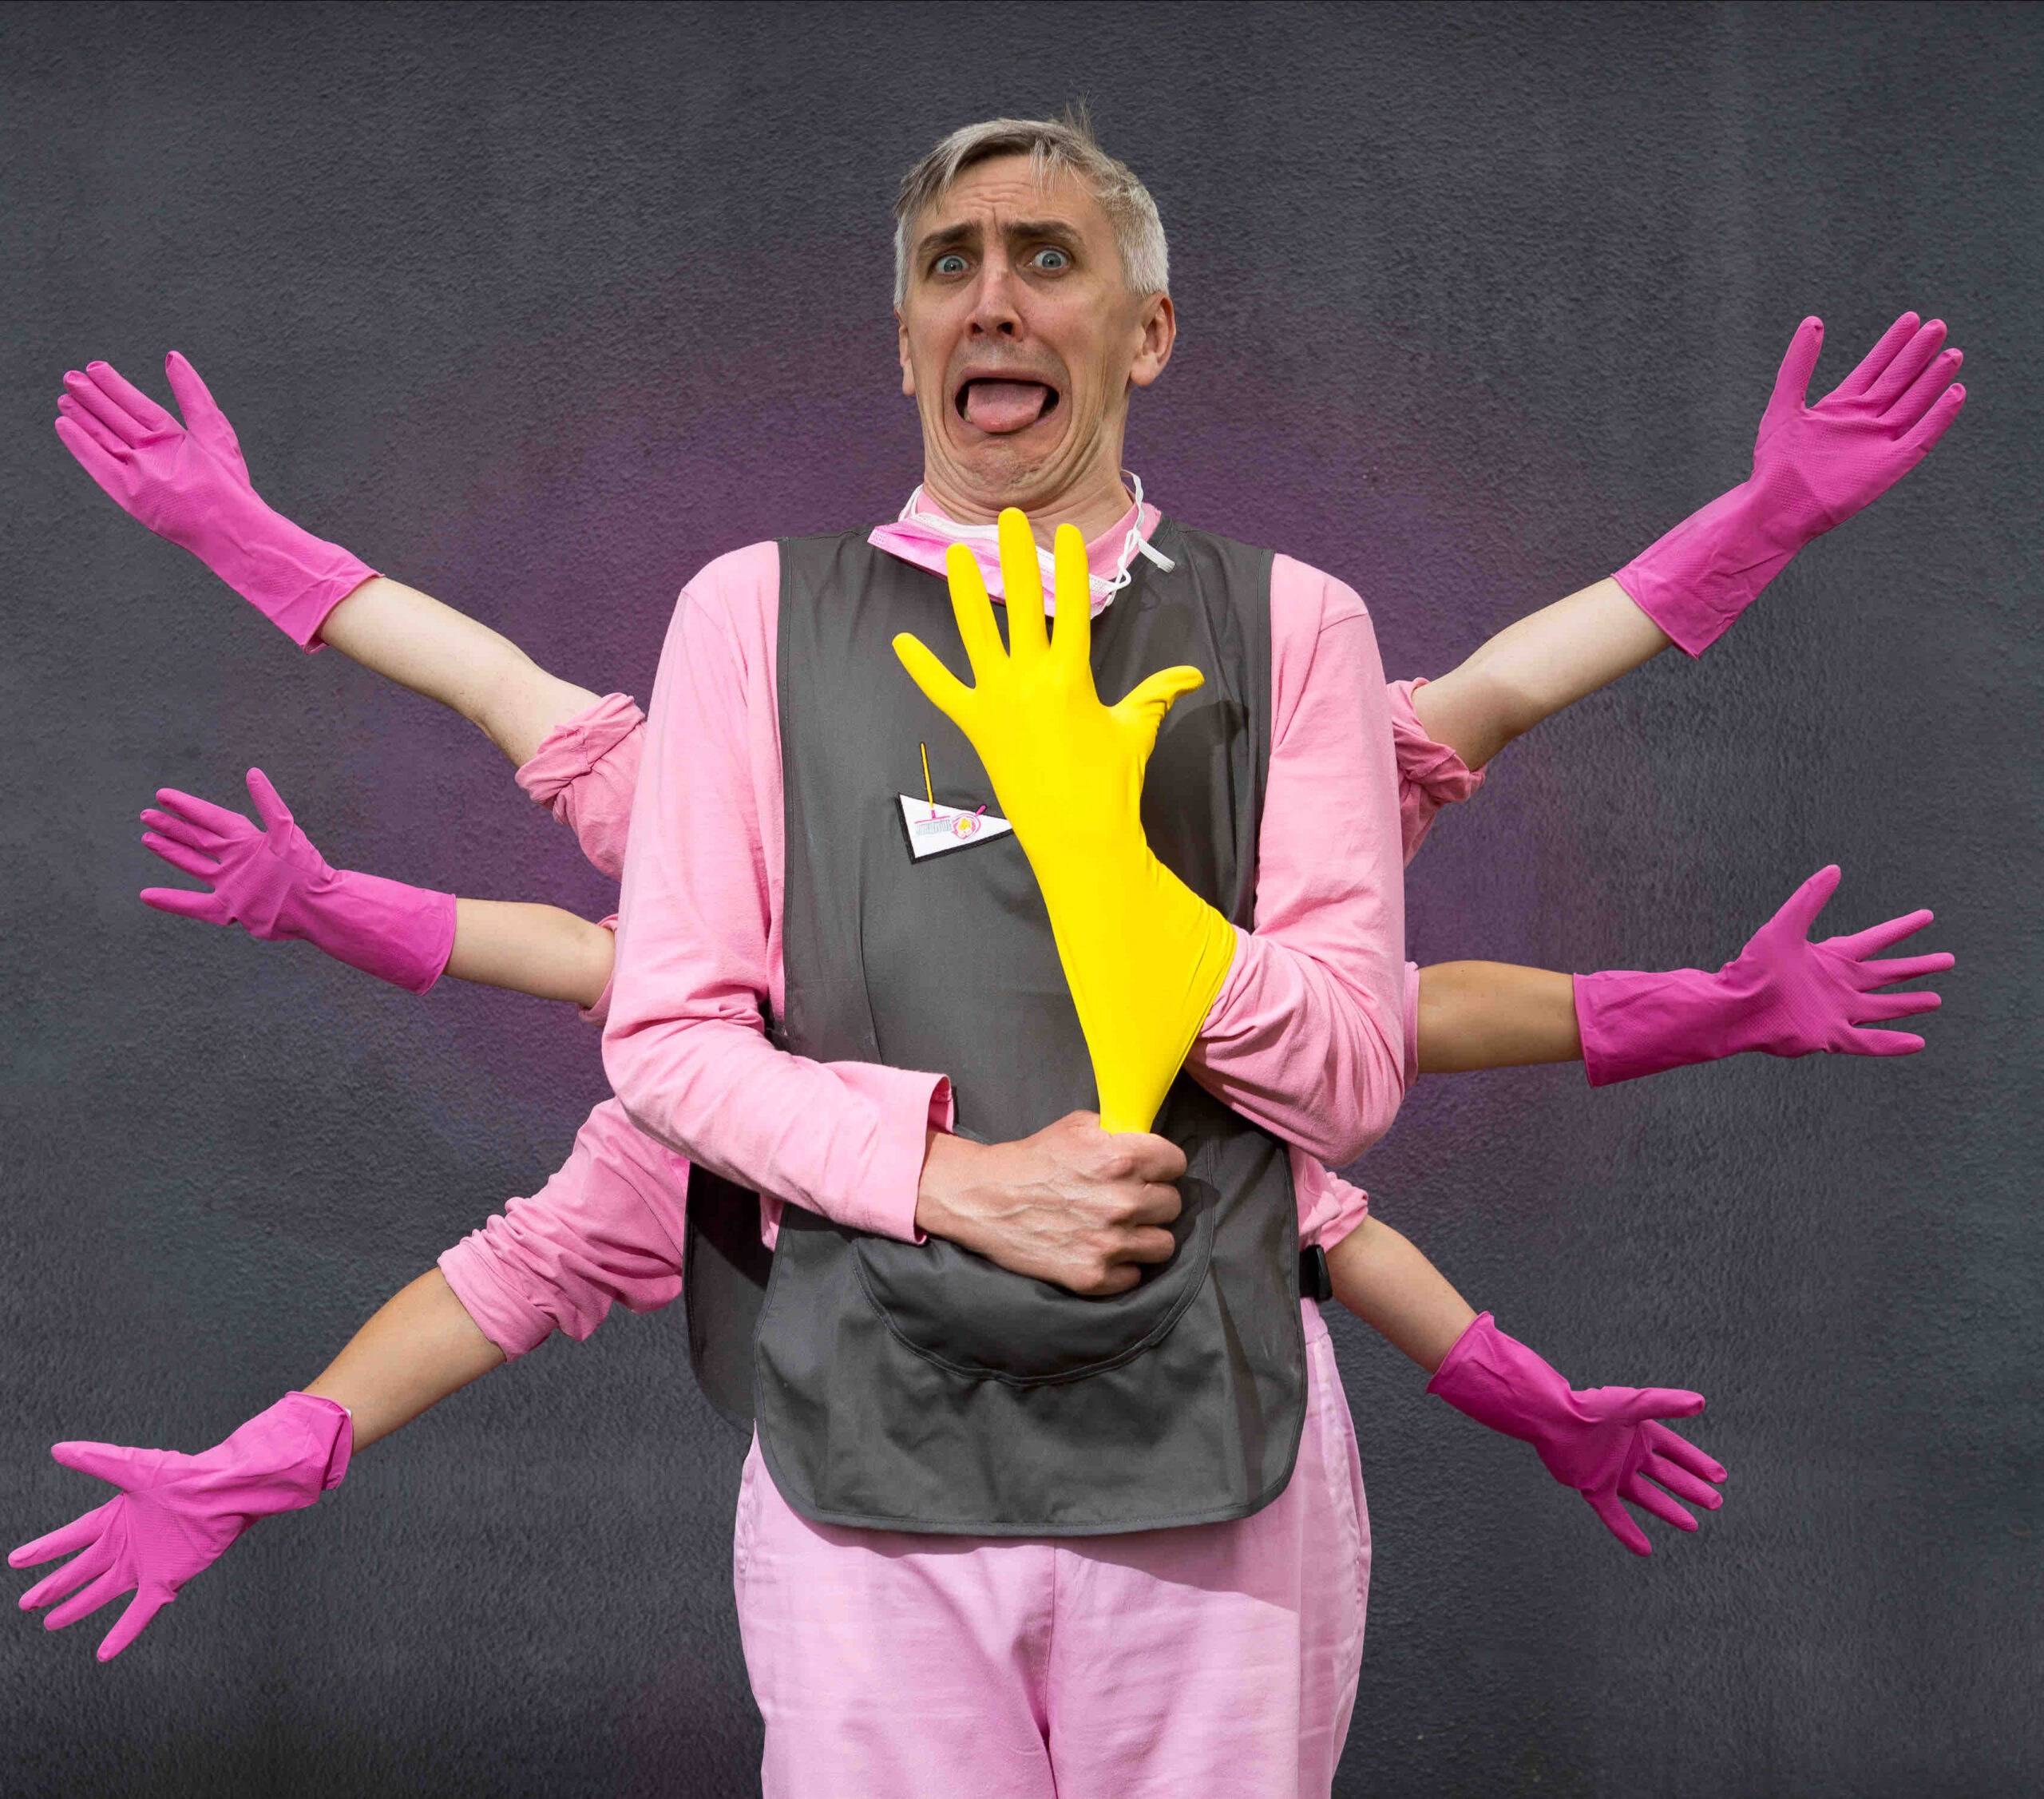 The Chief is standing against the grey painted wall and is wearing a pink t shirt and trousers with a grey tabard over the top. He is pulling a yellow rubber glove onto his hand in front of his body, and his face seems like a mixture of surprise and disgust. Behind him, the other characters' arms fan out on either side. They are all wearing pink rubber gloves.